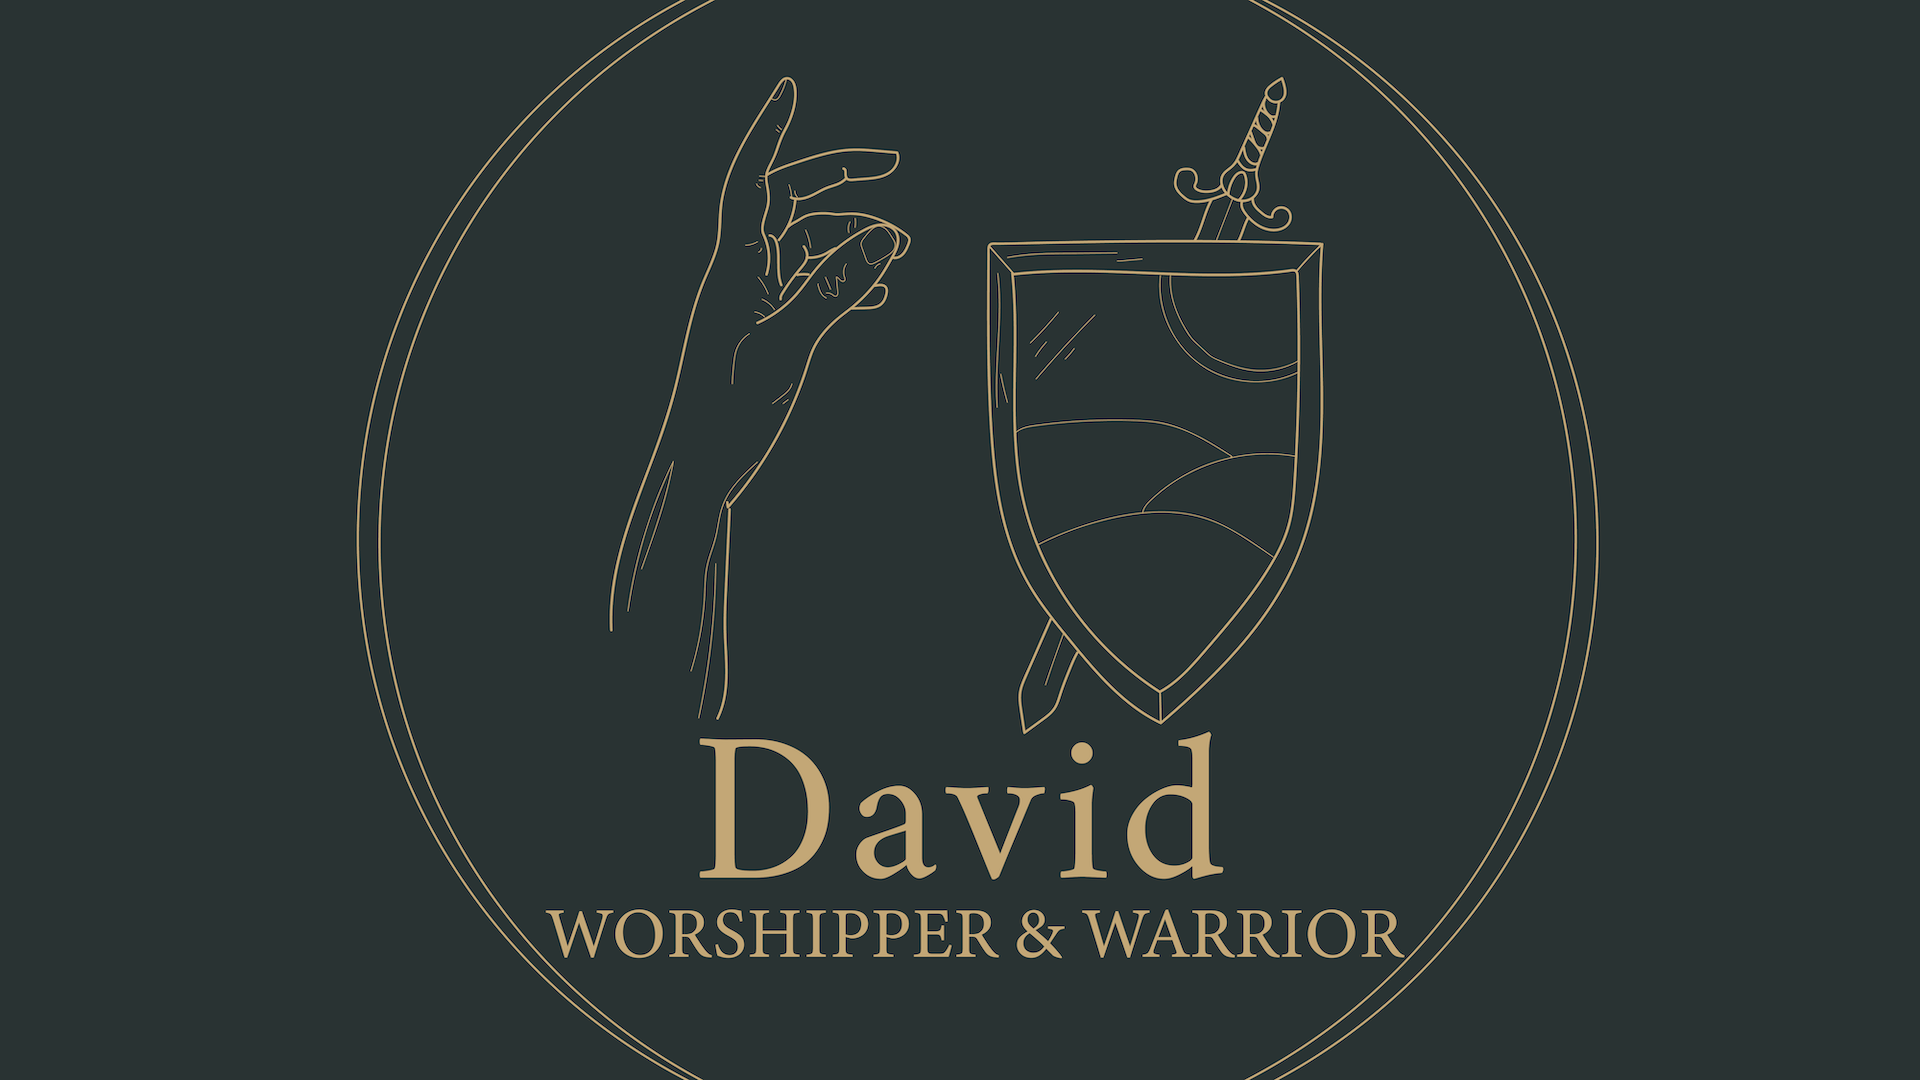 David: Worshipper and Warrior